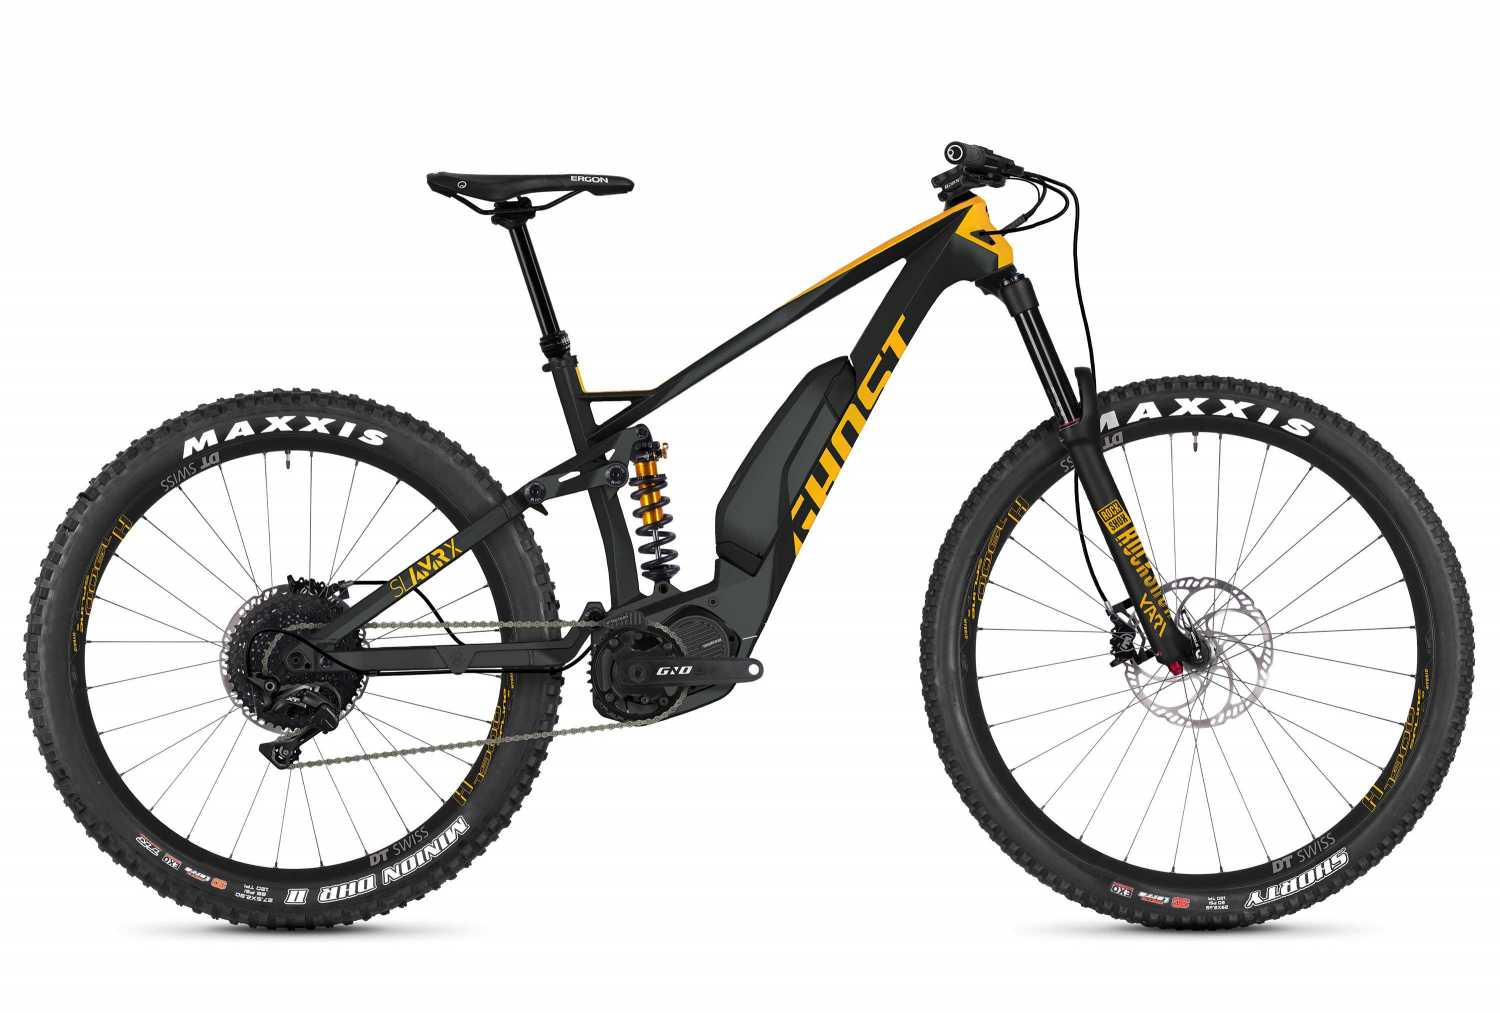 GHOST HybRide SL AMR X S 5.7+ LC